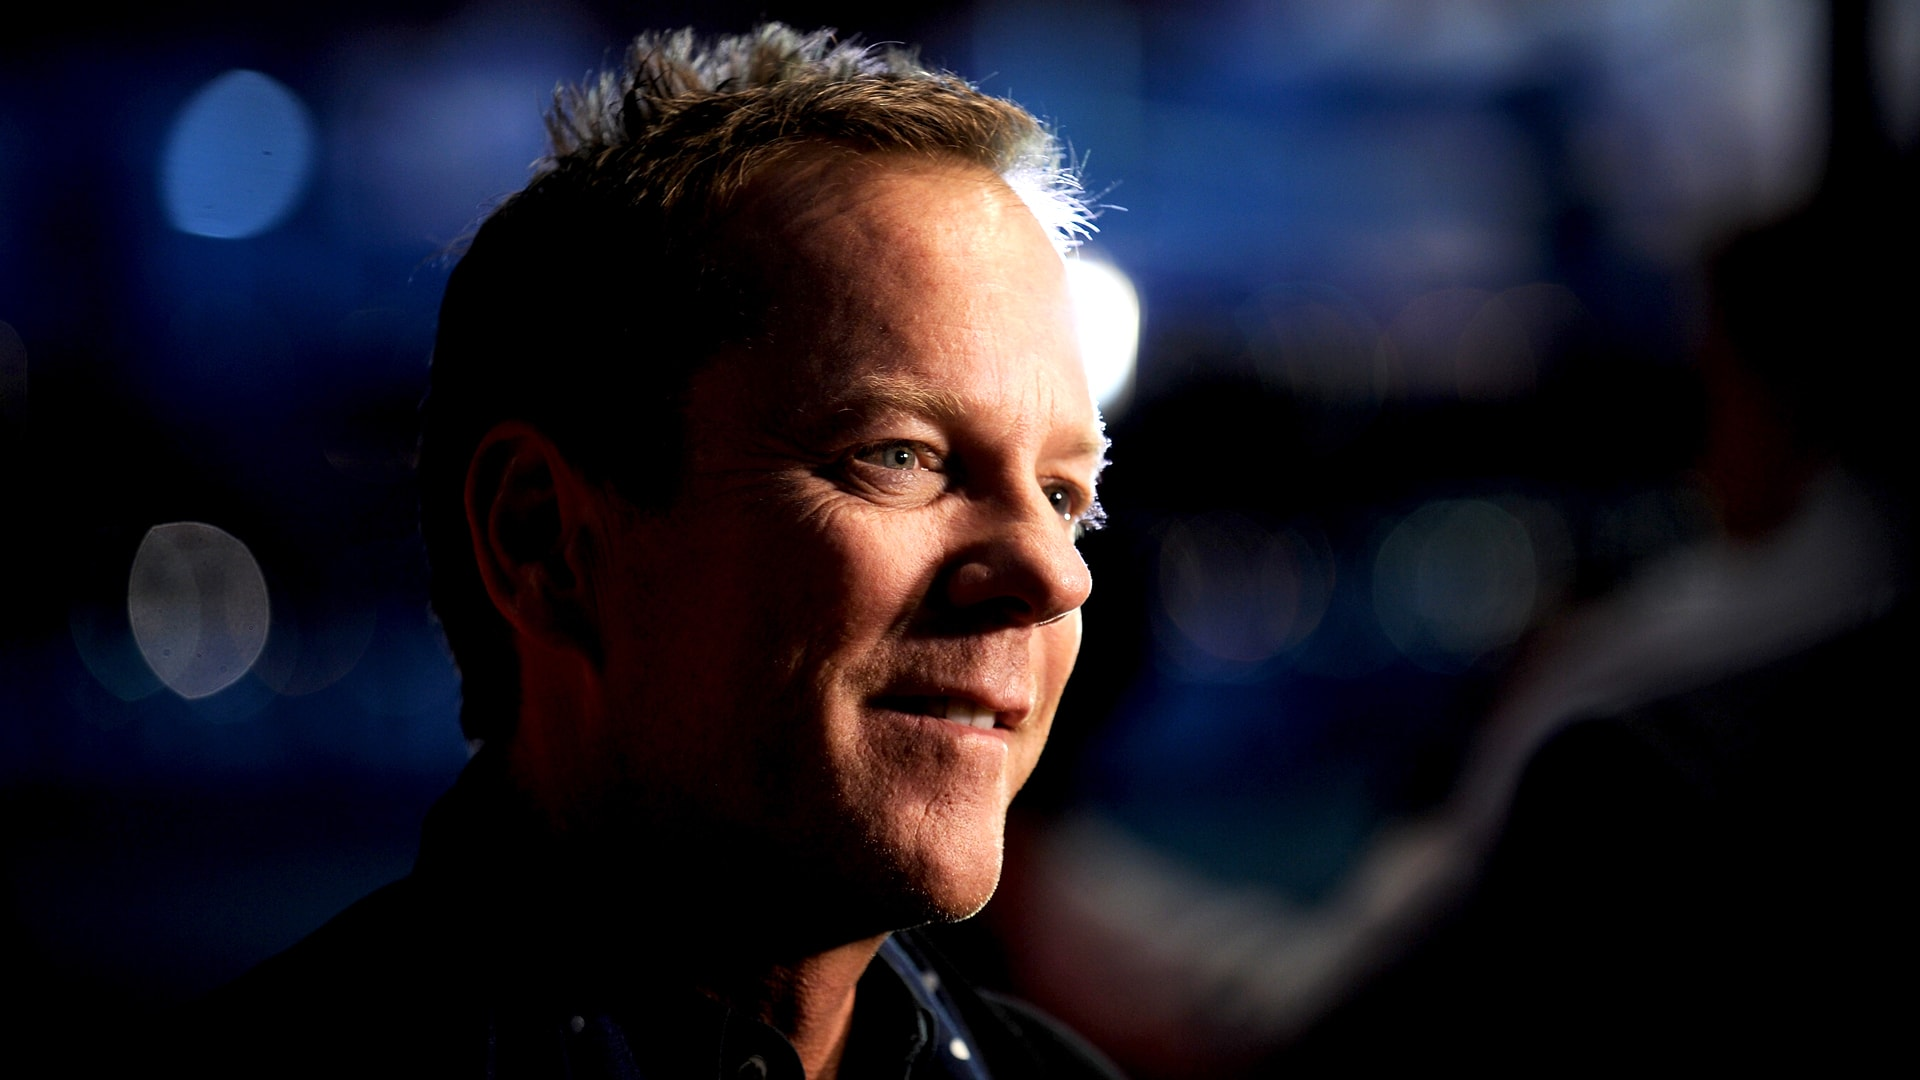 Kiefer Sutherland Desktop wallpaper